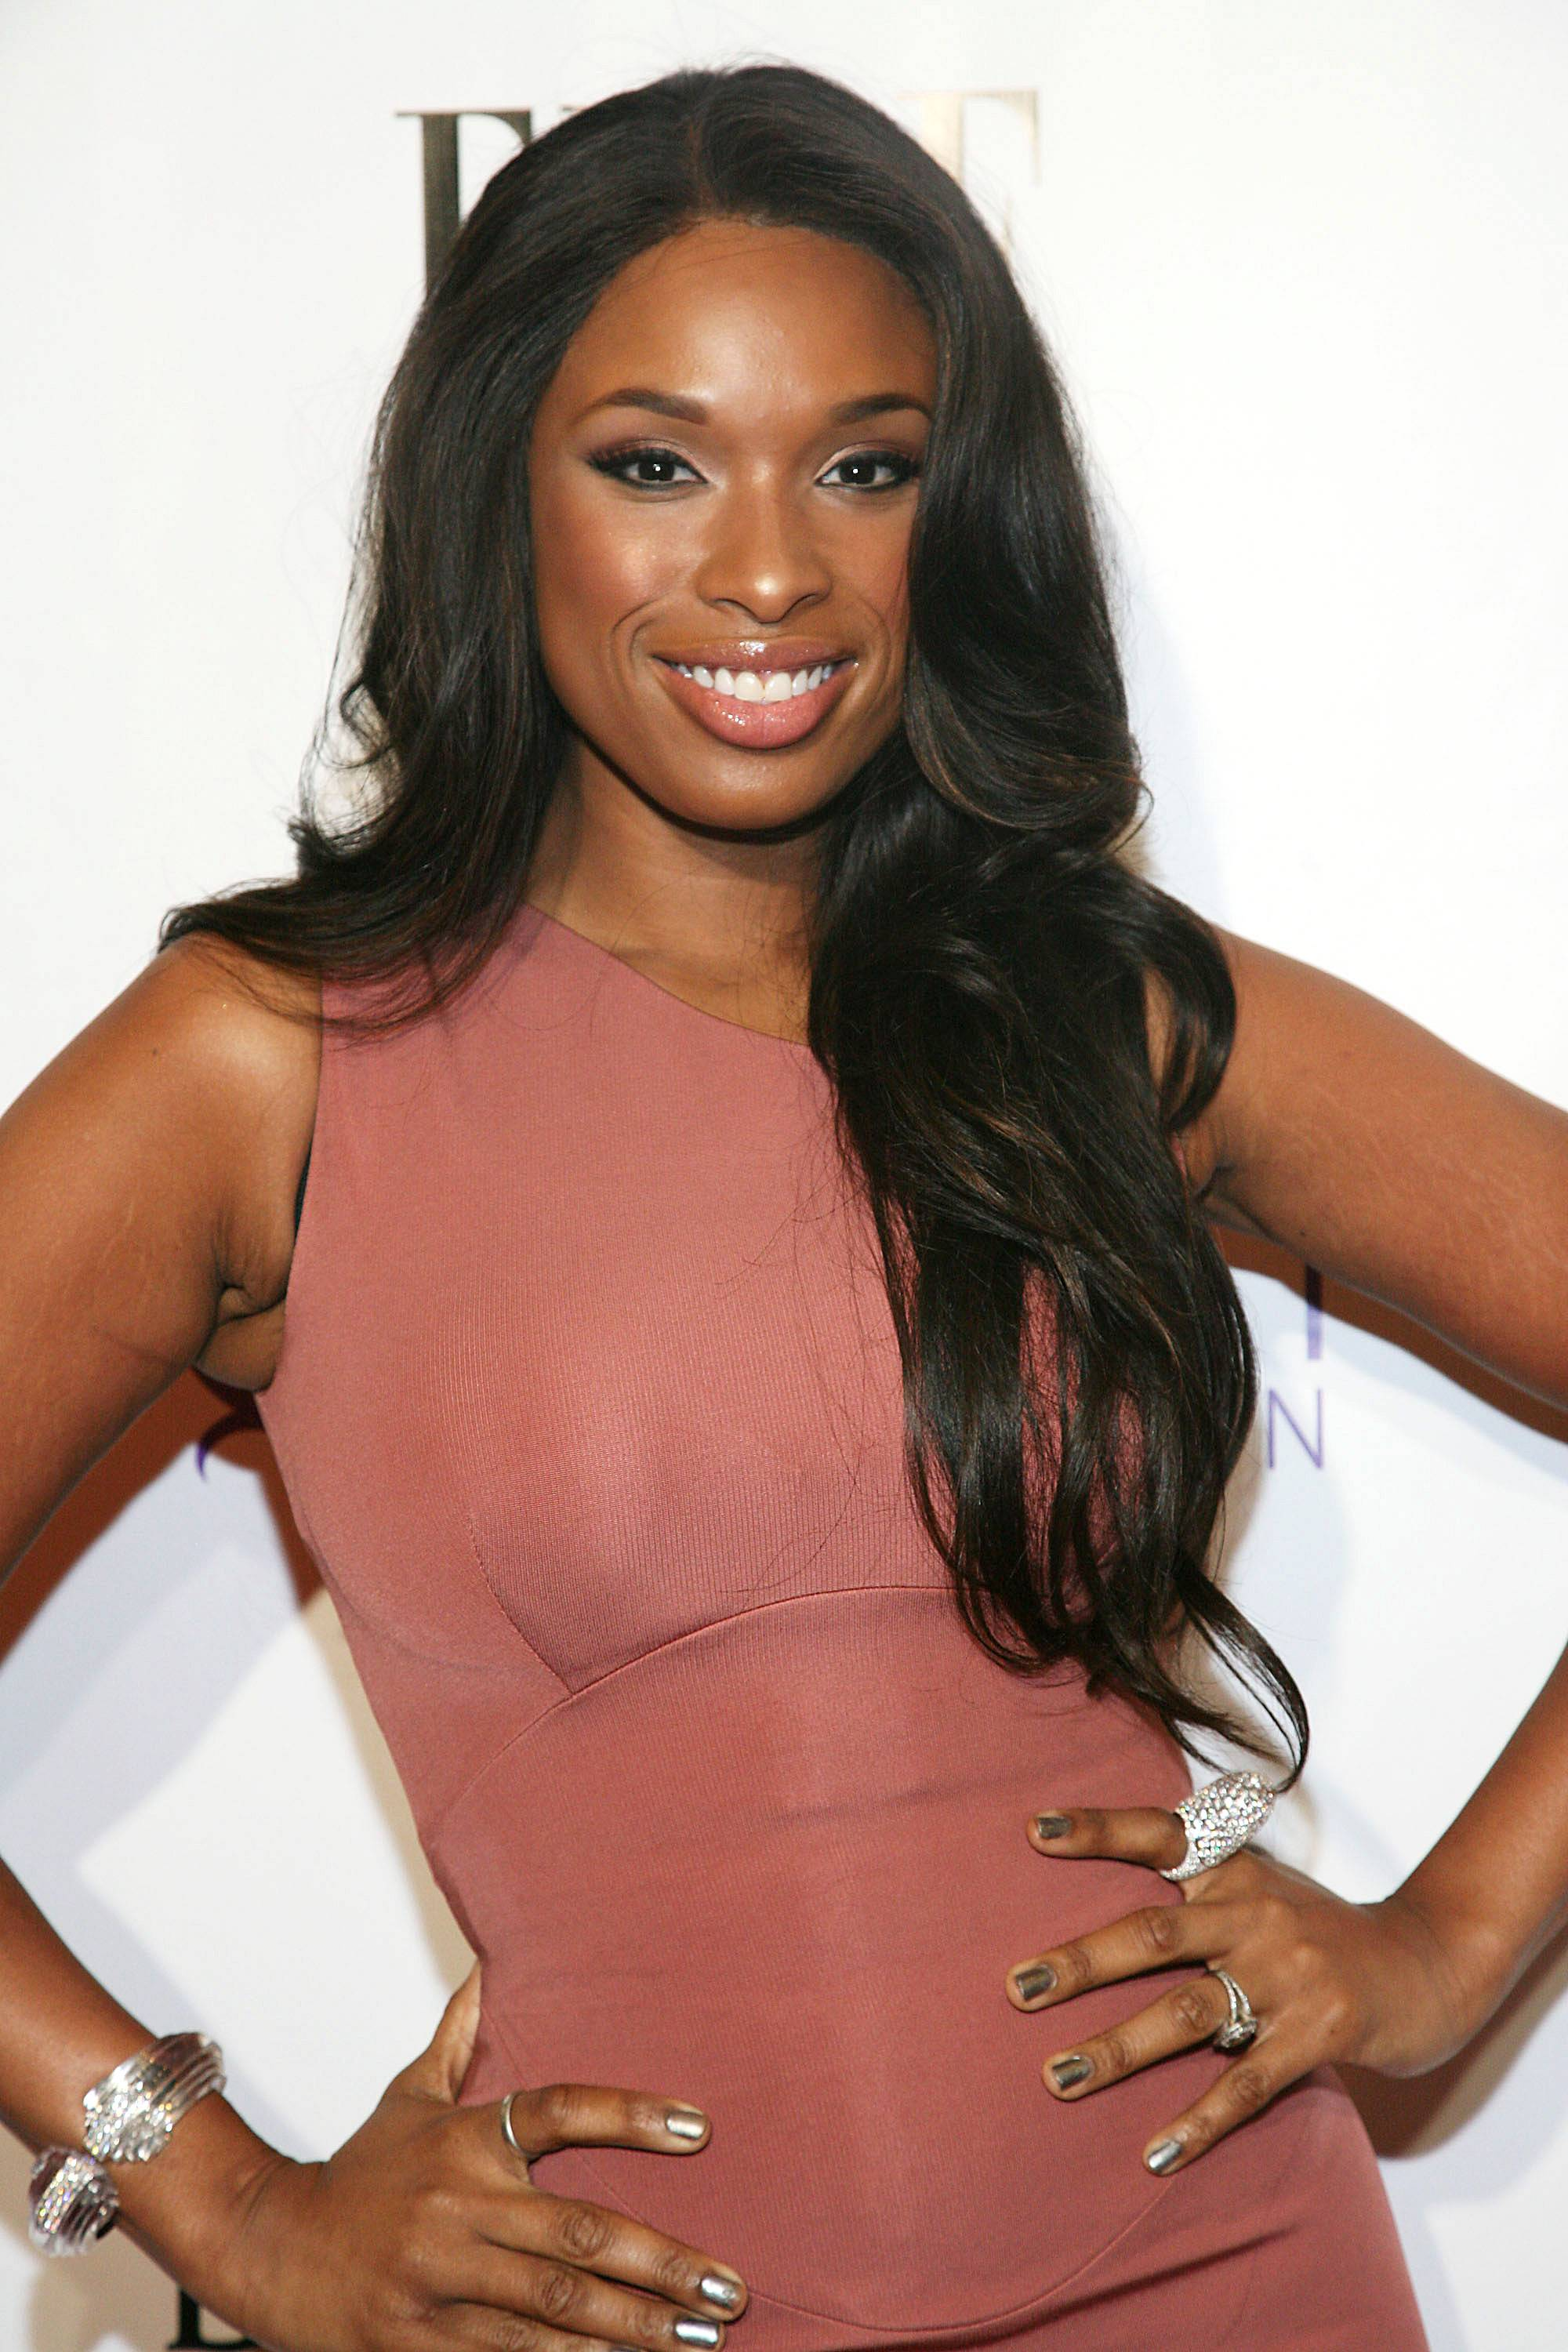 Jennifer Hudson\r - Despite finishing in seventh place, Jennifer Hudson is arguably one of the two most successful American Idol alumni ever. The 29-year-old has an Academy Award, Golden Globe and Grammy to her name. Hudson?s second album, I Remember Me, was released earlier this year.\r(Photo: Rob Kim/Getty Images)